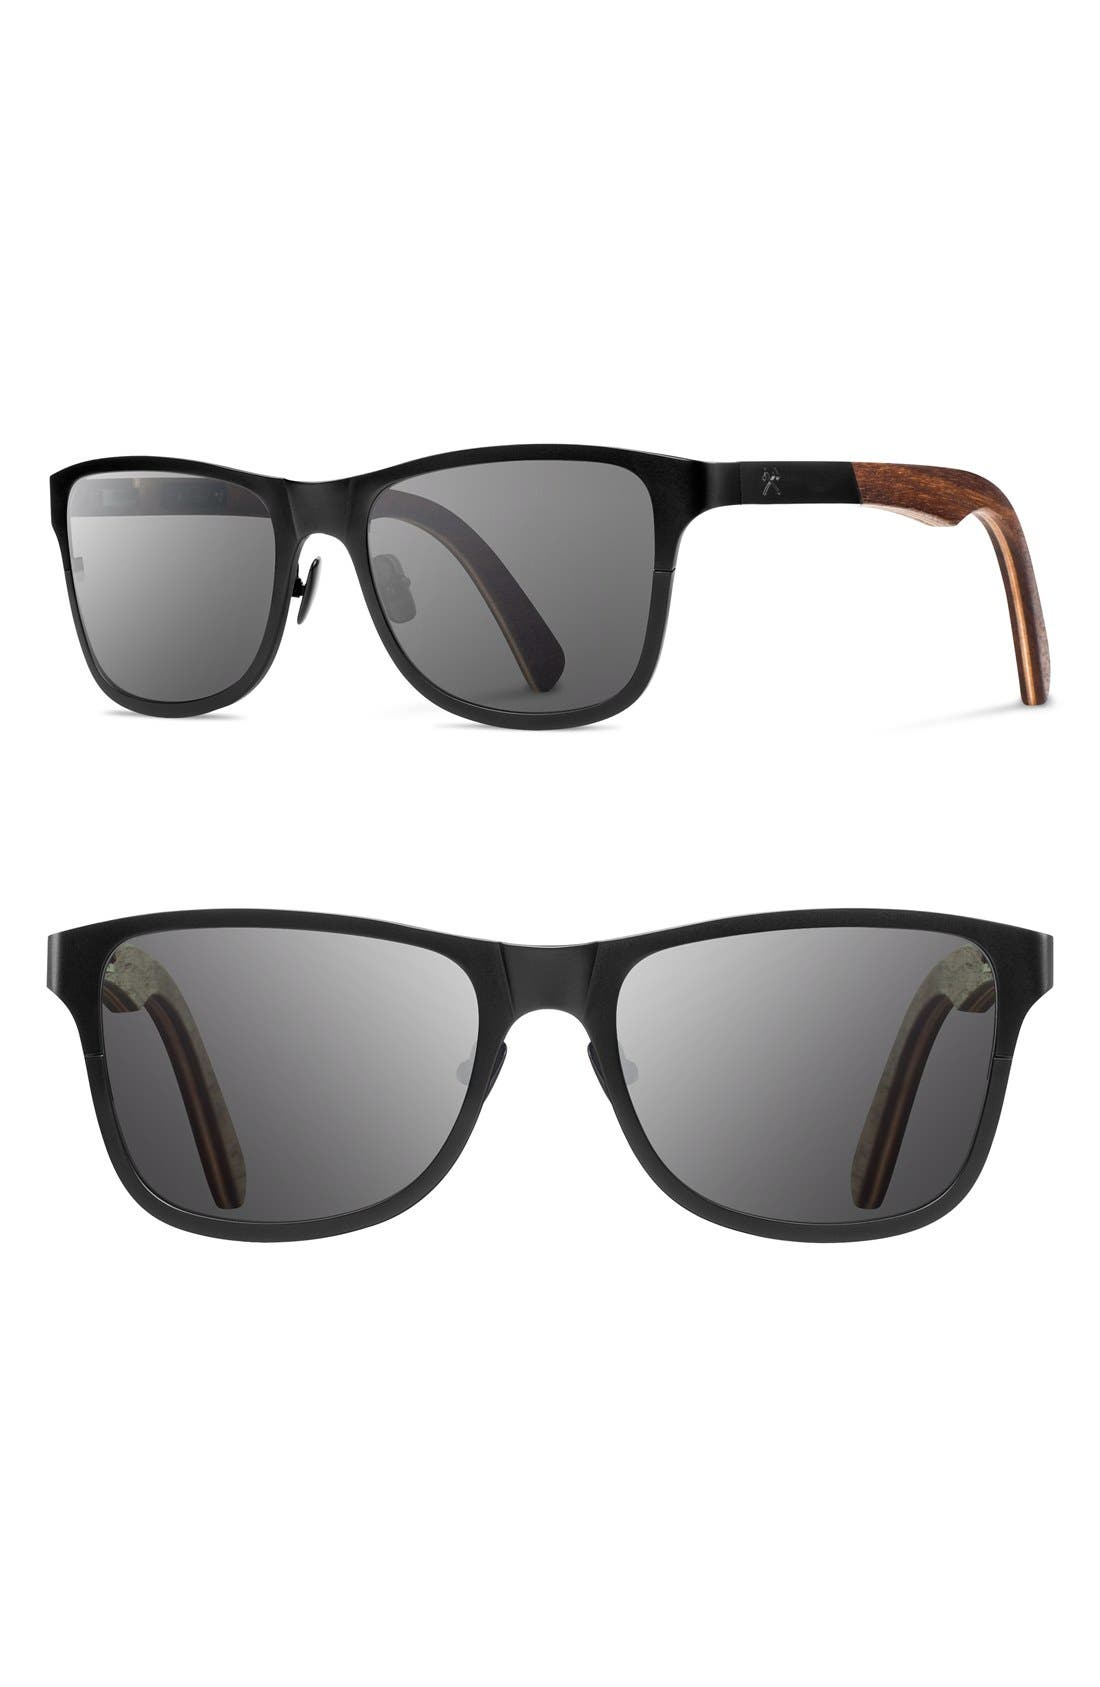 Alternate Image 1 Selected - Shwood 'Canby' 54mm Titanium & Wood Sunglasses